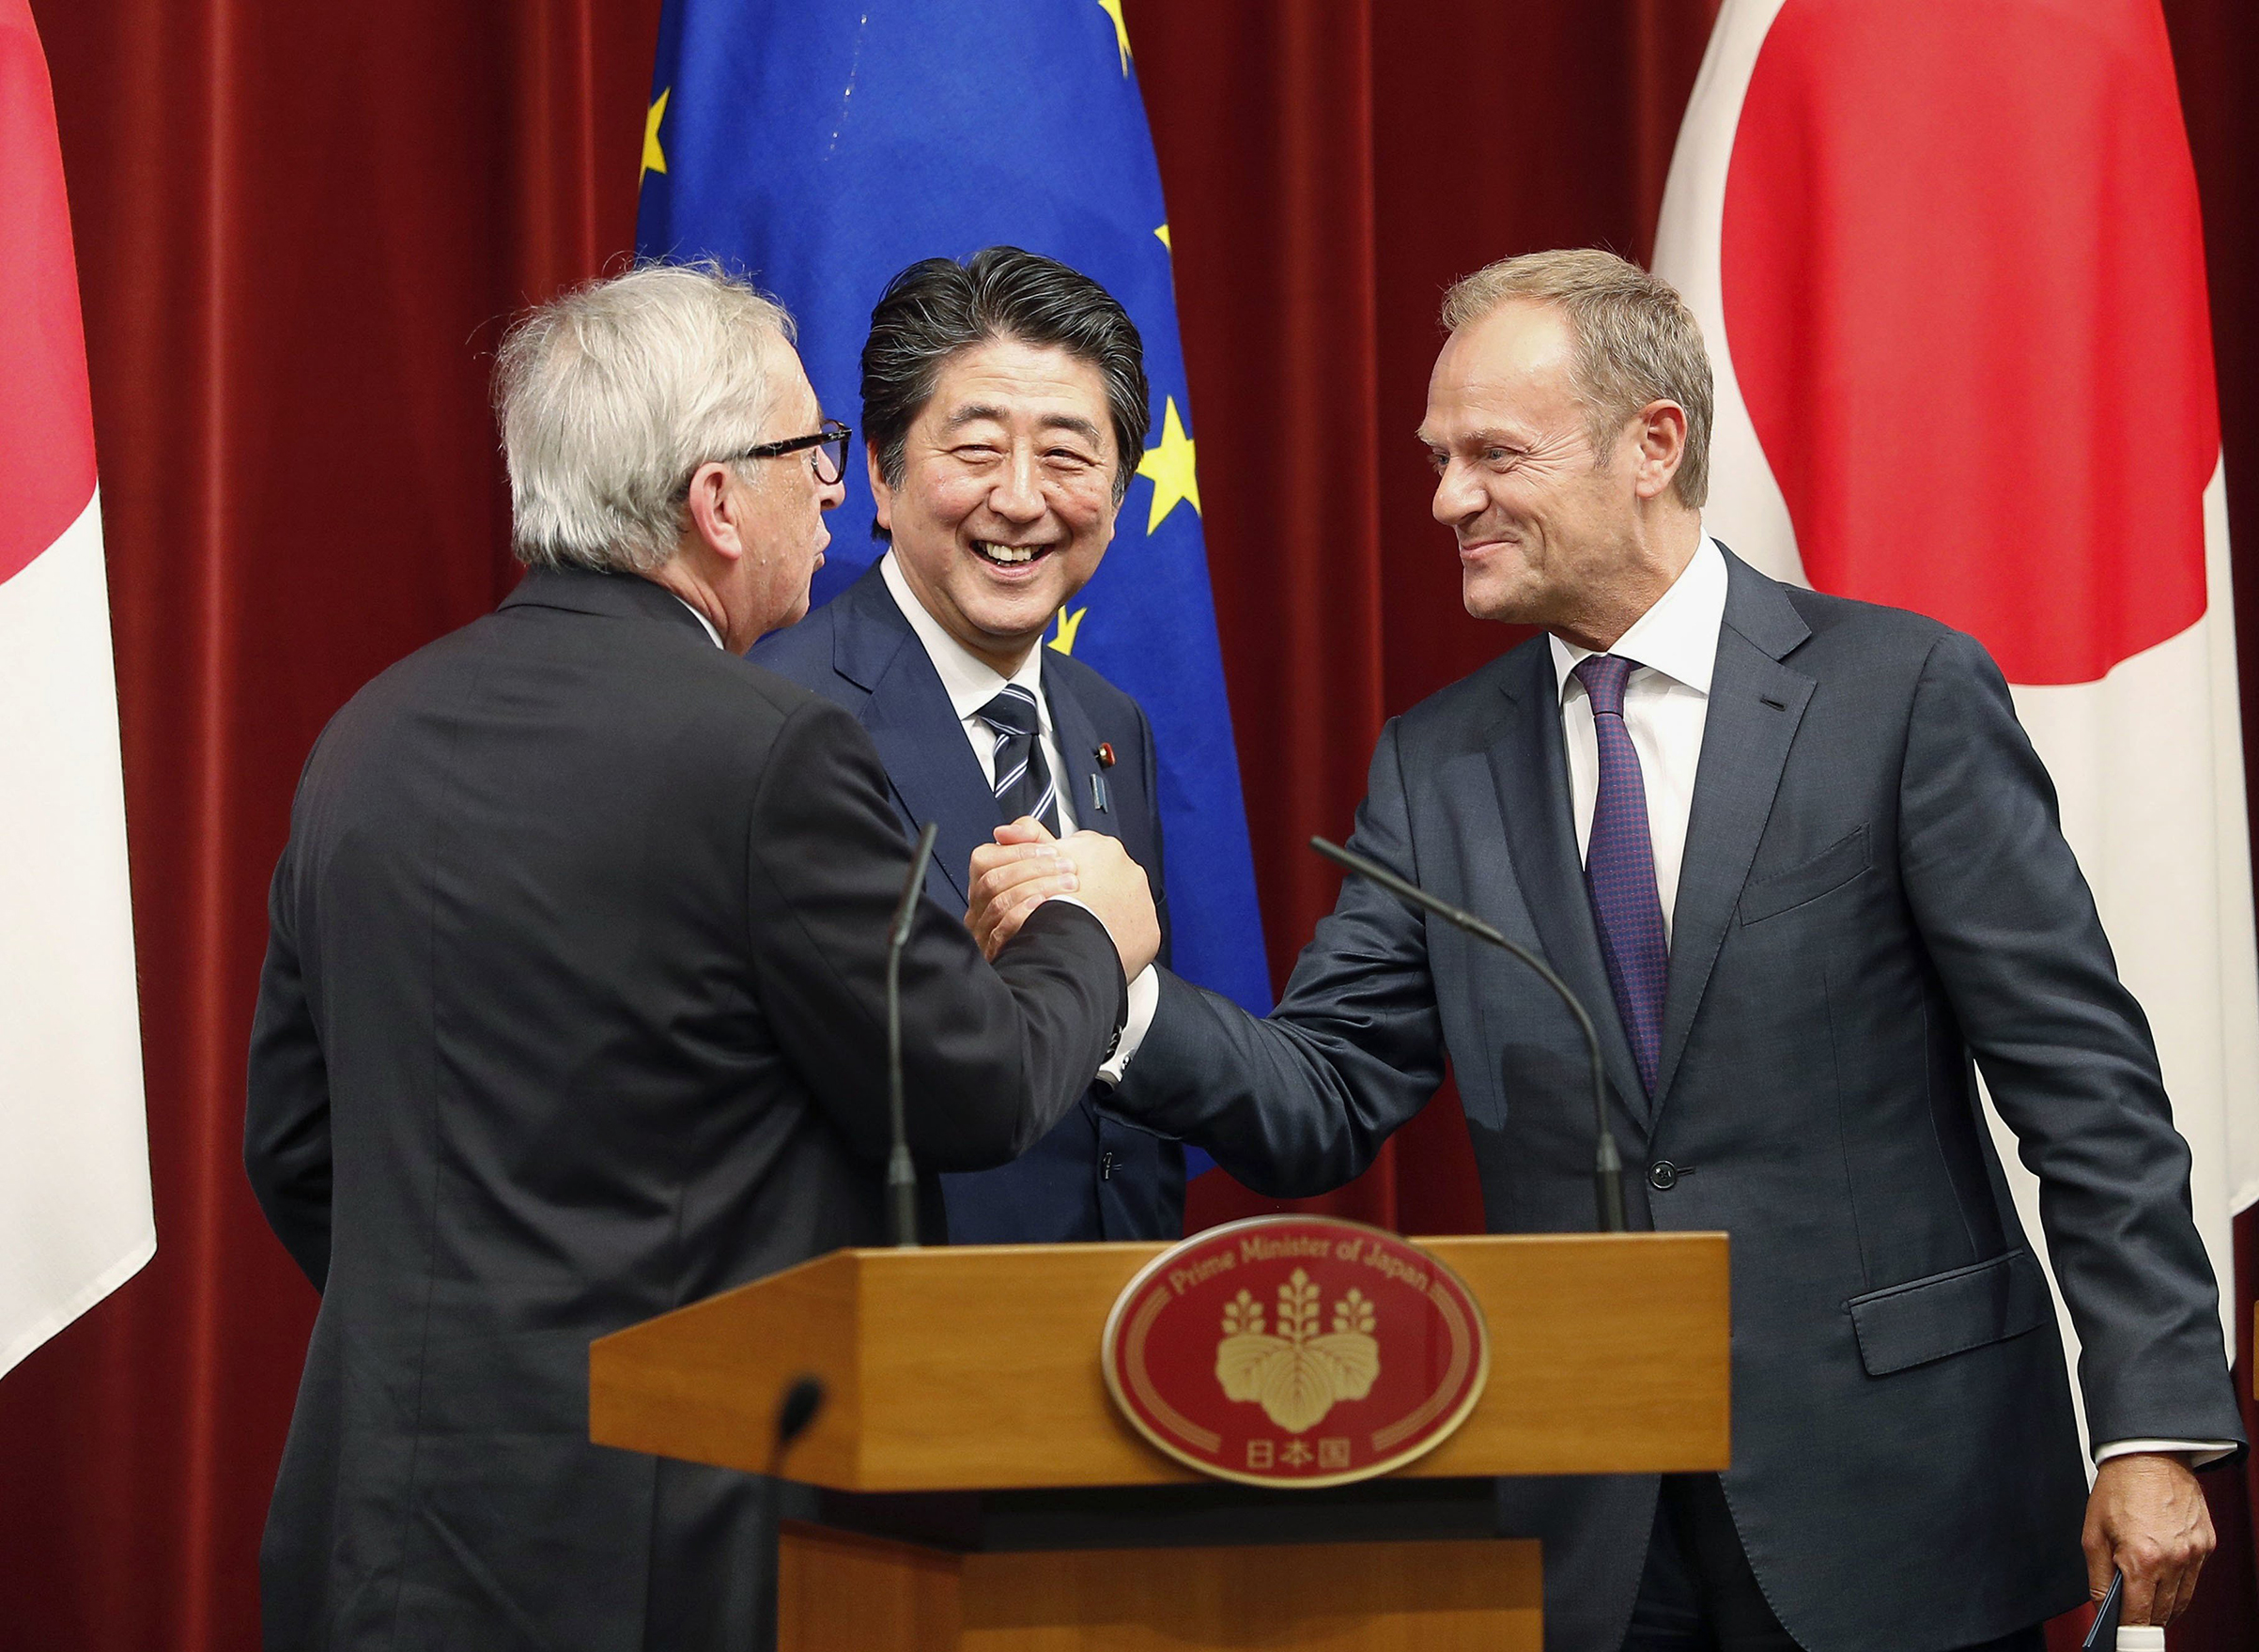 European Council President Donald Tusk (R) and European Commission President Jean-Claude Juncker (L), alongside Japanese Prime Minister Shinzo Abe, shake hands at Abe's office in Tokyo on July 17, 2018, after they signed a free trade deal with Japan.